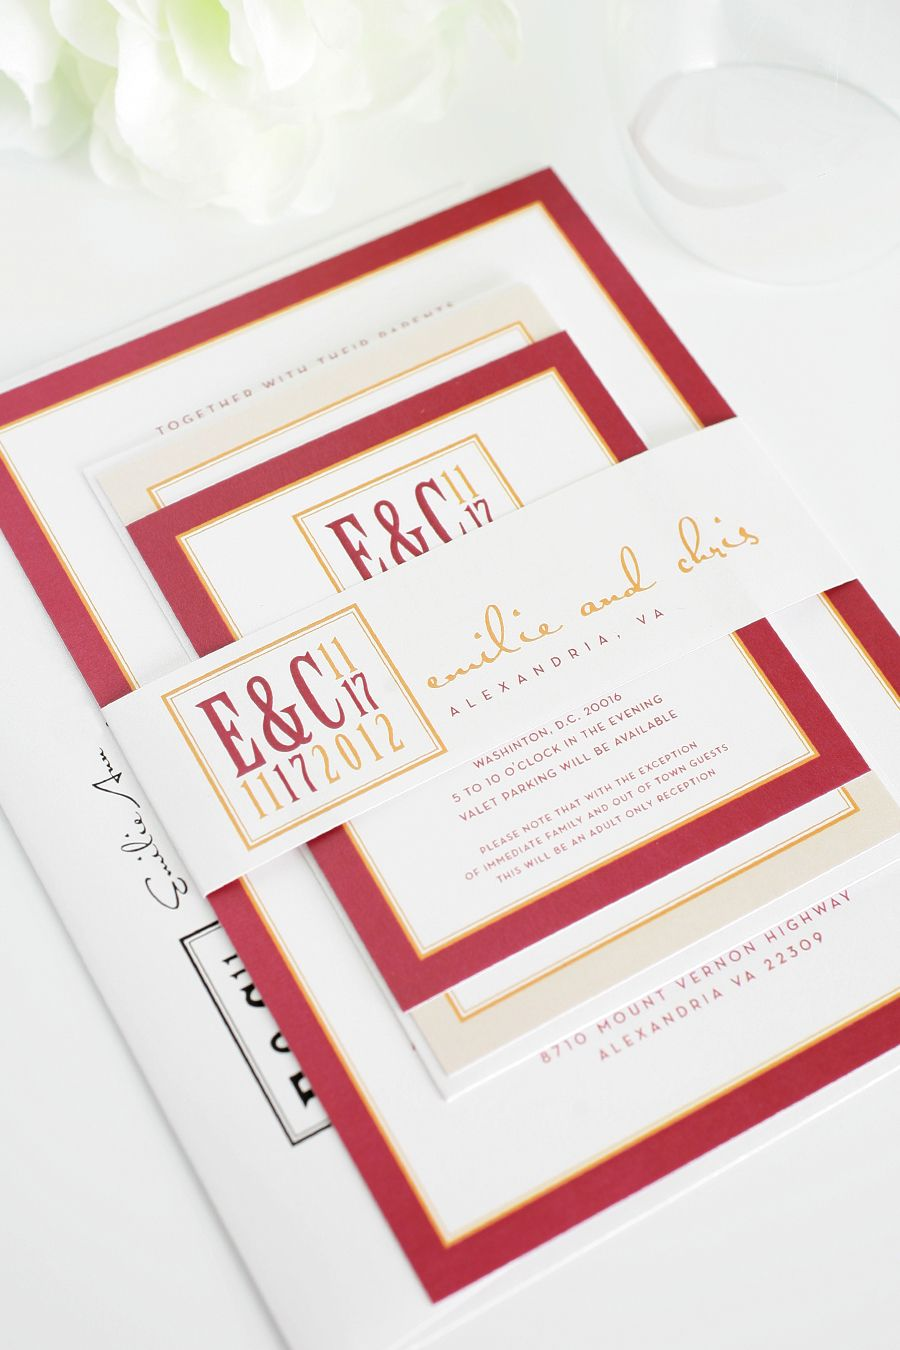 Fall Wedding Invitations in Red and Orange | Pinterest | Shine ...